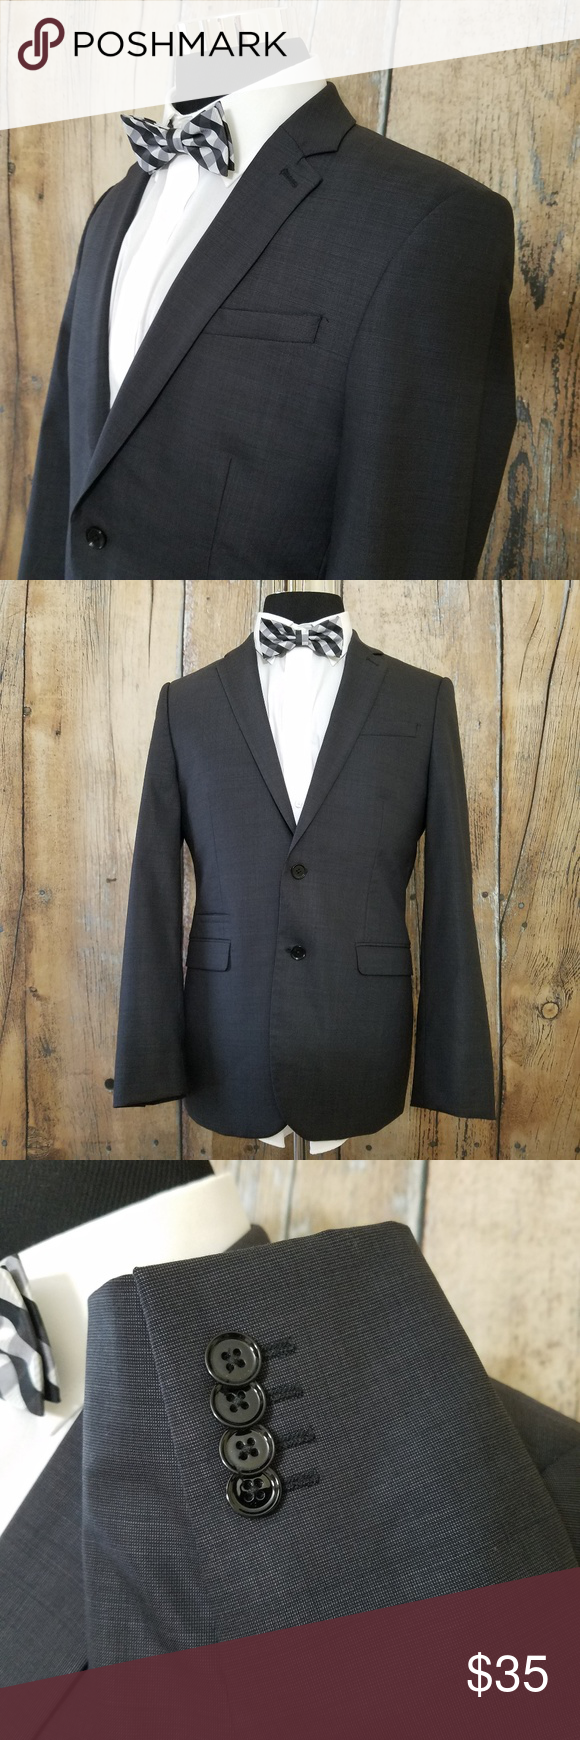 b00aeaebc28 Express Fitted Sport Coat Mens 40 R Wool Gray Good Used Condition Express  Fitted Dark Gray Sport Coat 2 Button Jacket Size  40 Regular Measurements  are ...